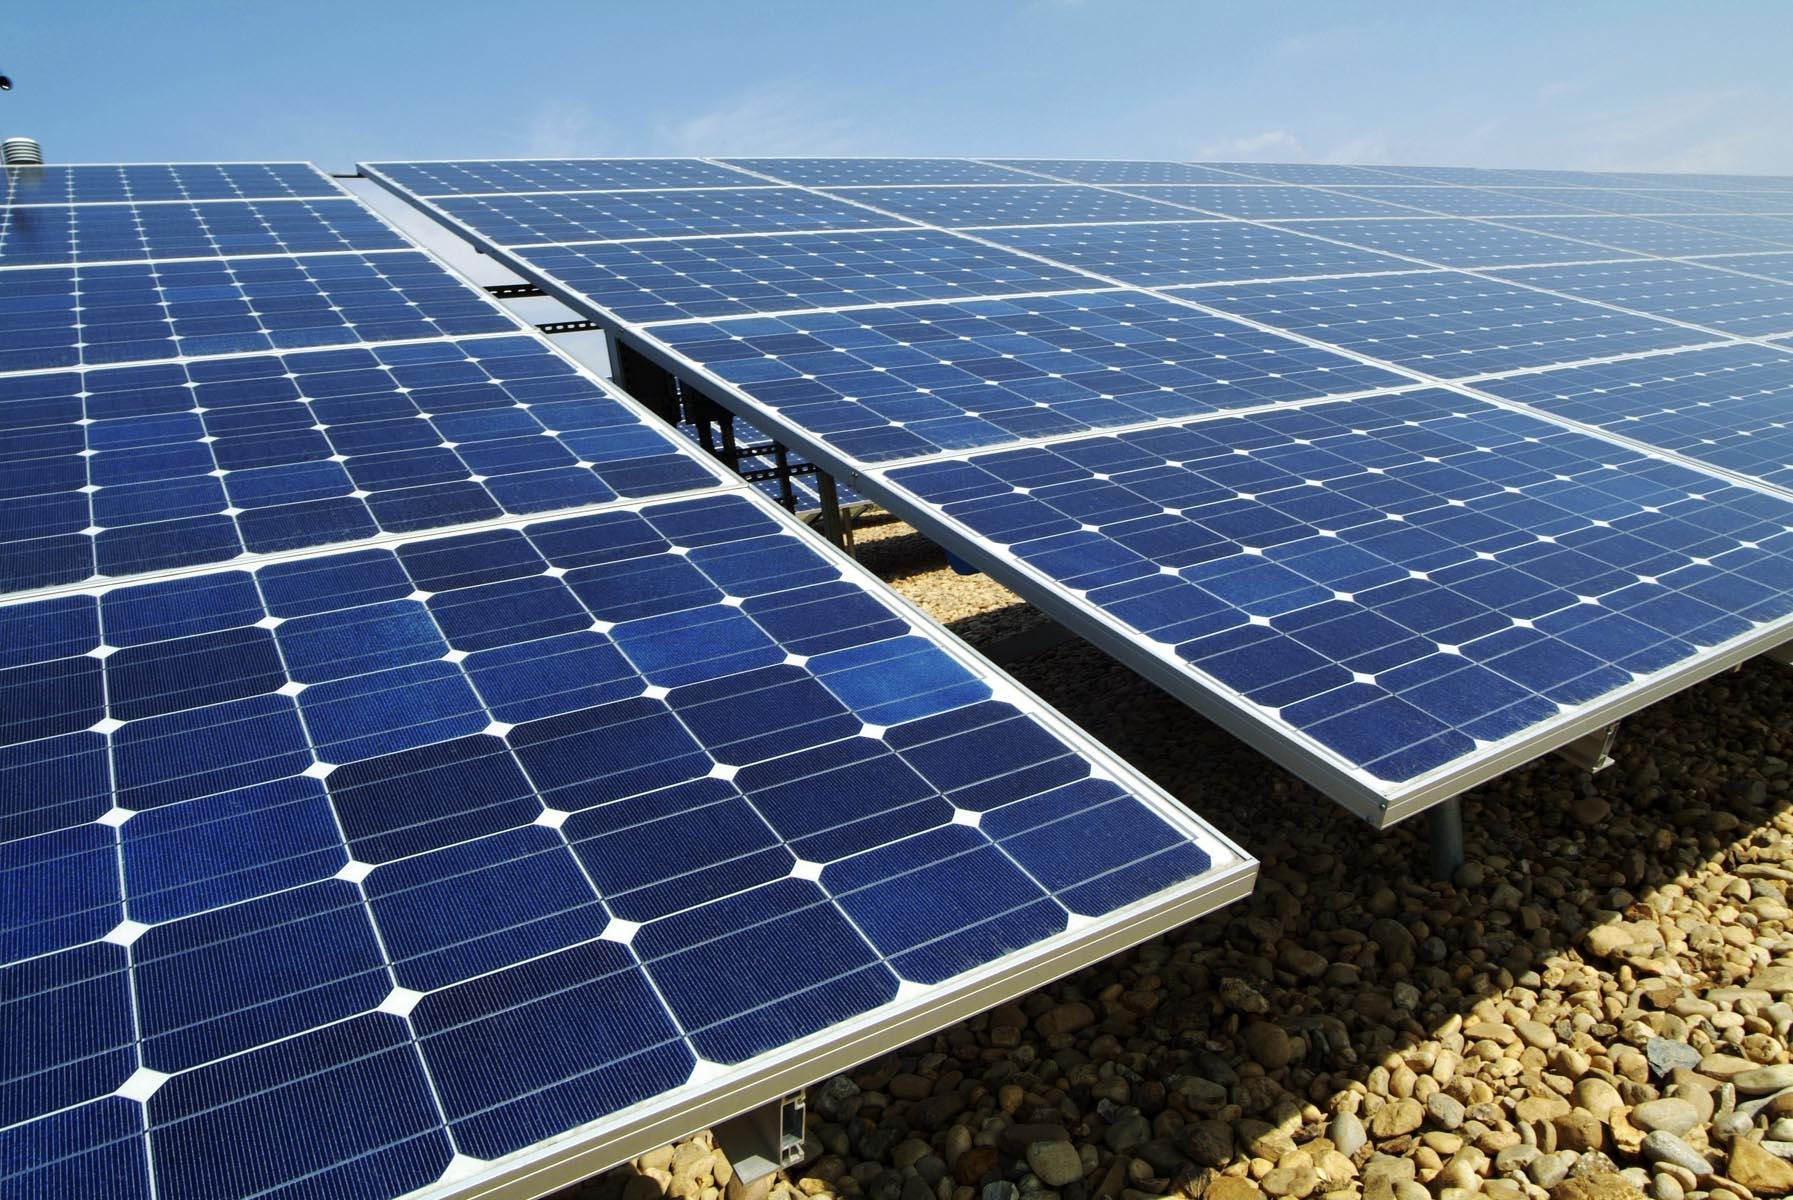 Solar Solar power is defined as the converting of light energy from the sun into electric energy by either directly using photovoltaic cells, or indirectly via concentrated solar power